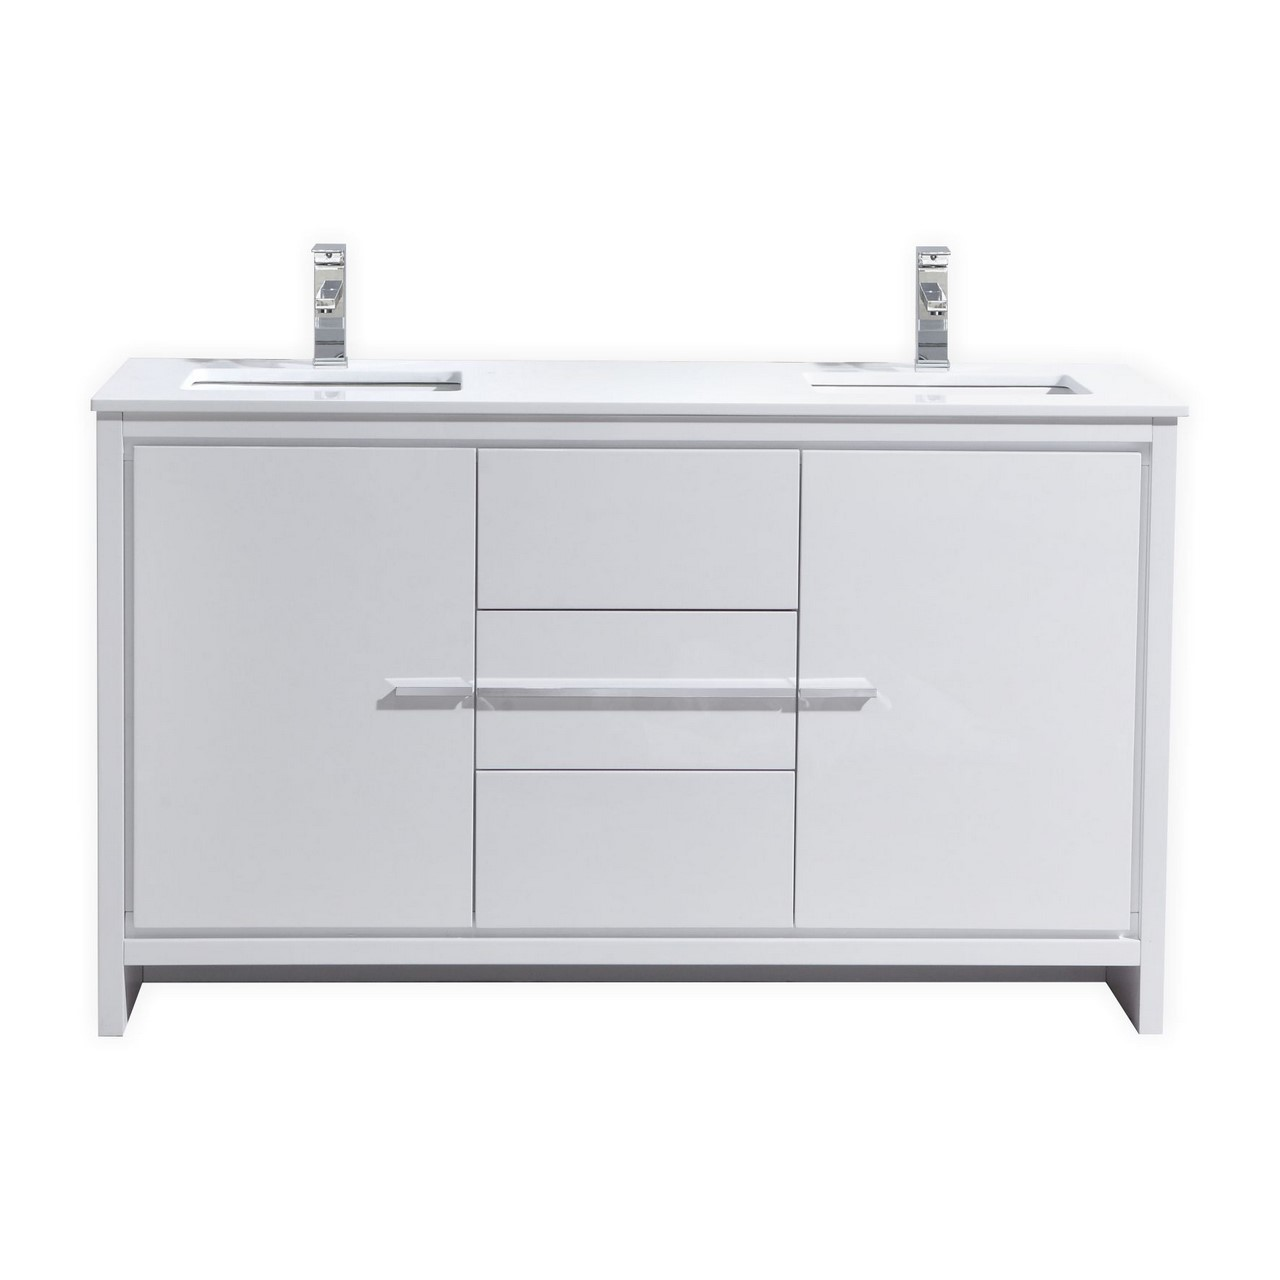 60 double sink bathroom vanity. KubeBath Dolce 60  Double Sink High Gloss White Modern Bathroom Vanity With Quartz Counter